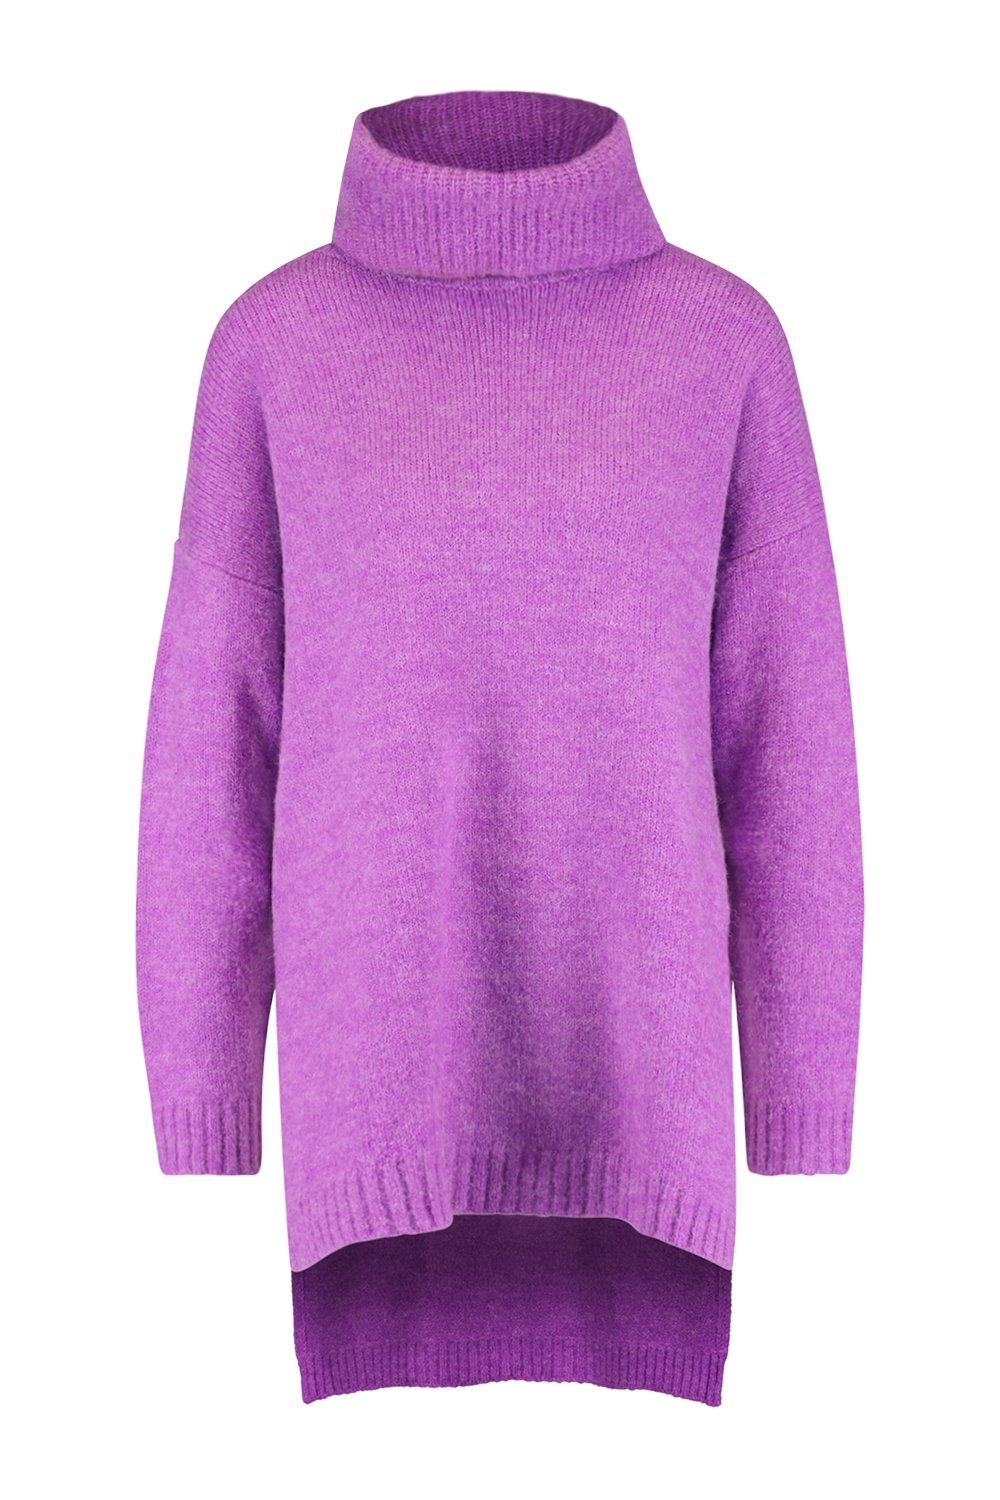 Jumper purple Neck Premium Oversized Roll wH6Oa